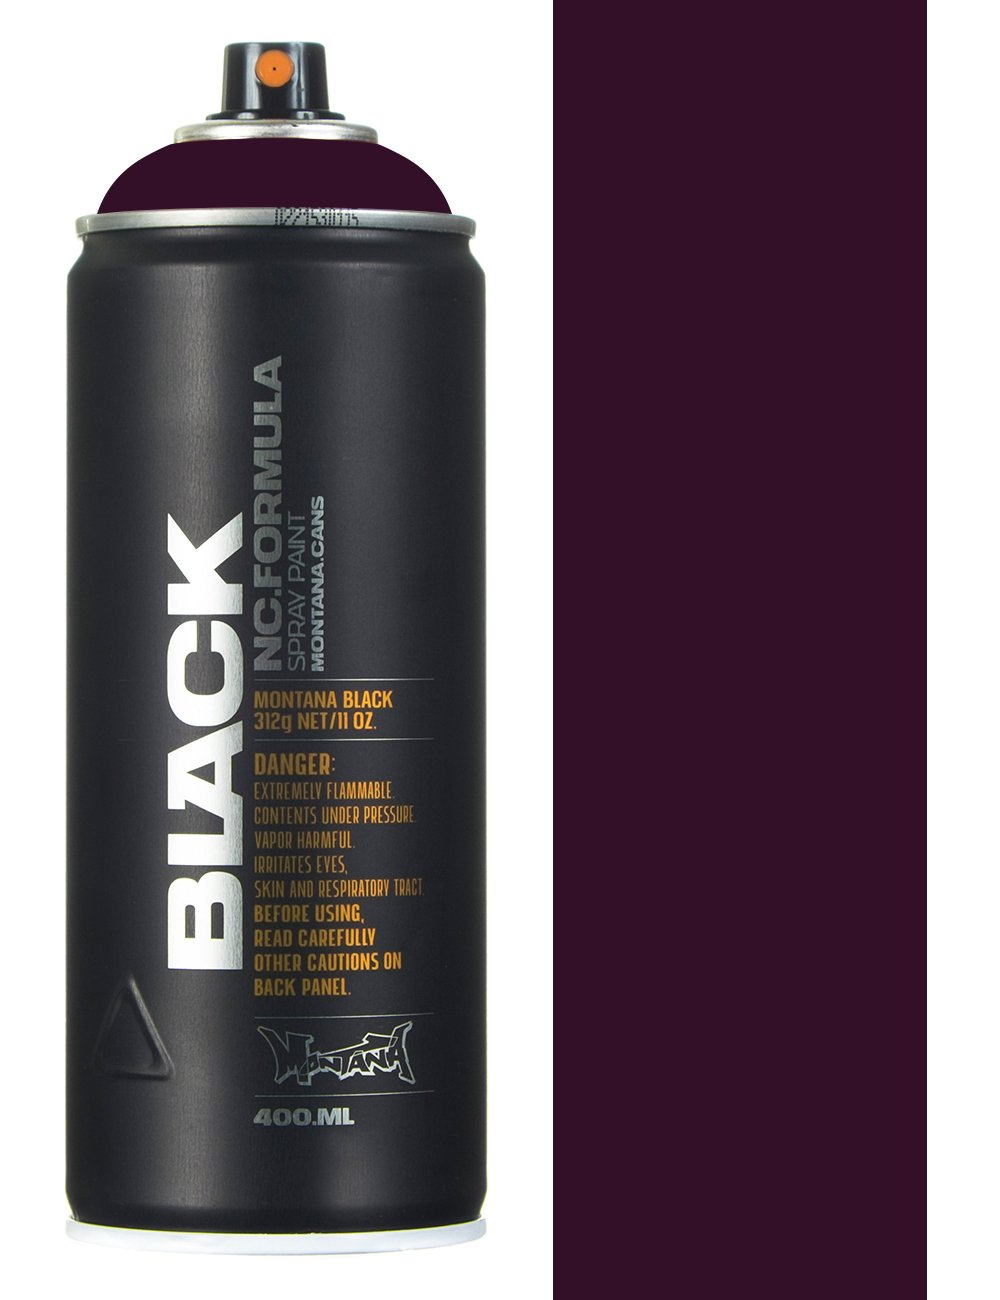 Montana black cherry spray paint 400ml montana black from fat buddha store uk Black spray paint